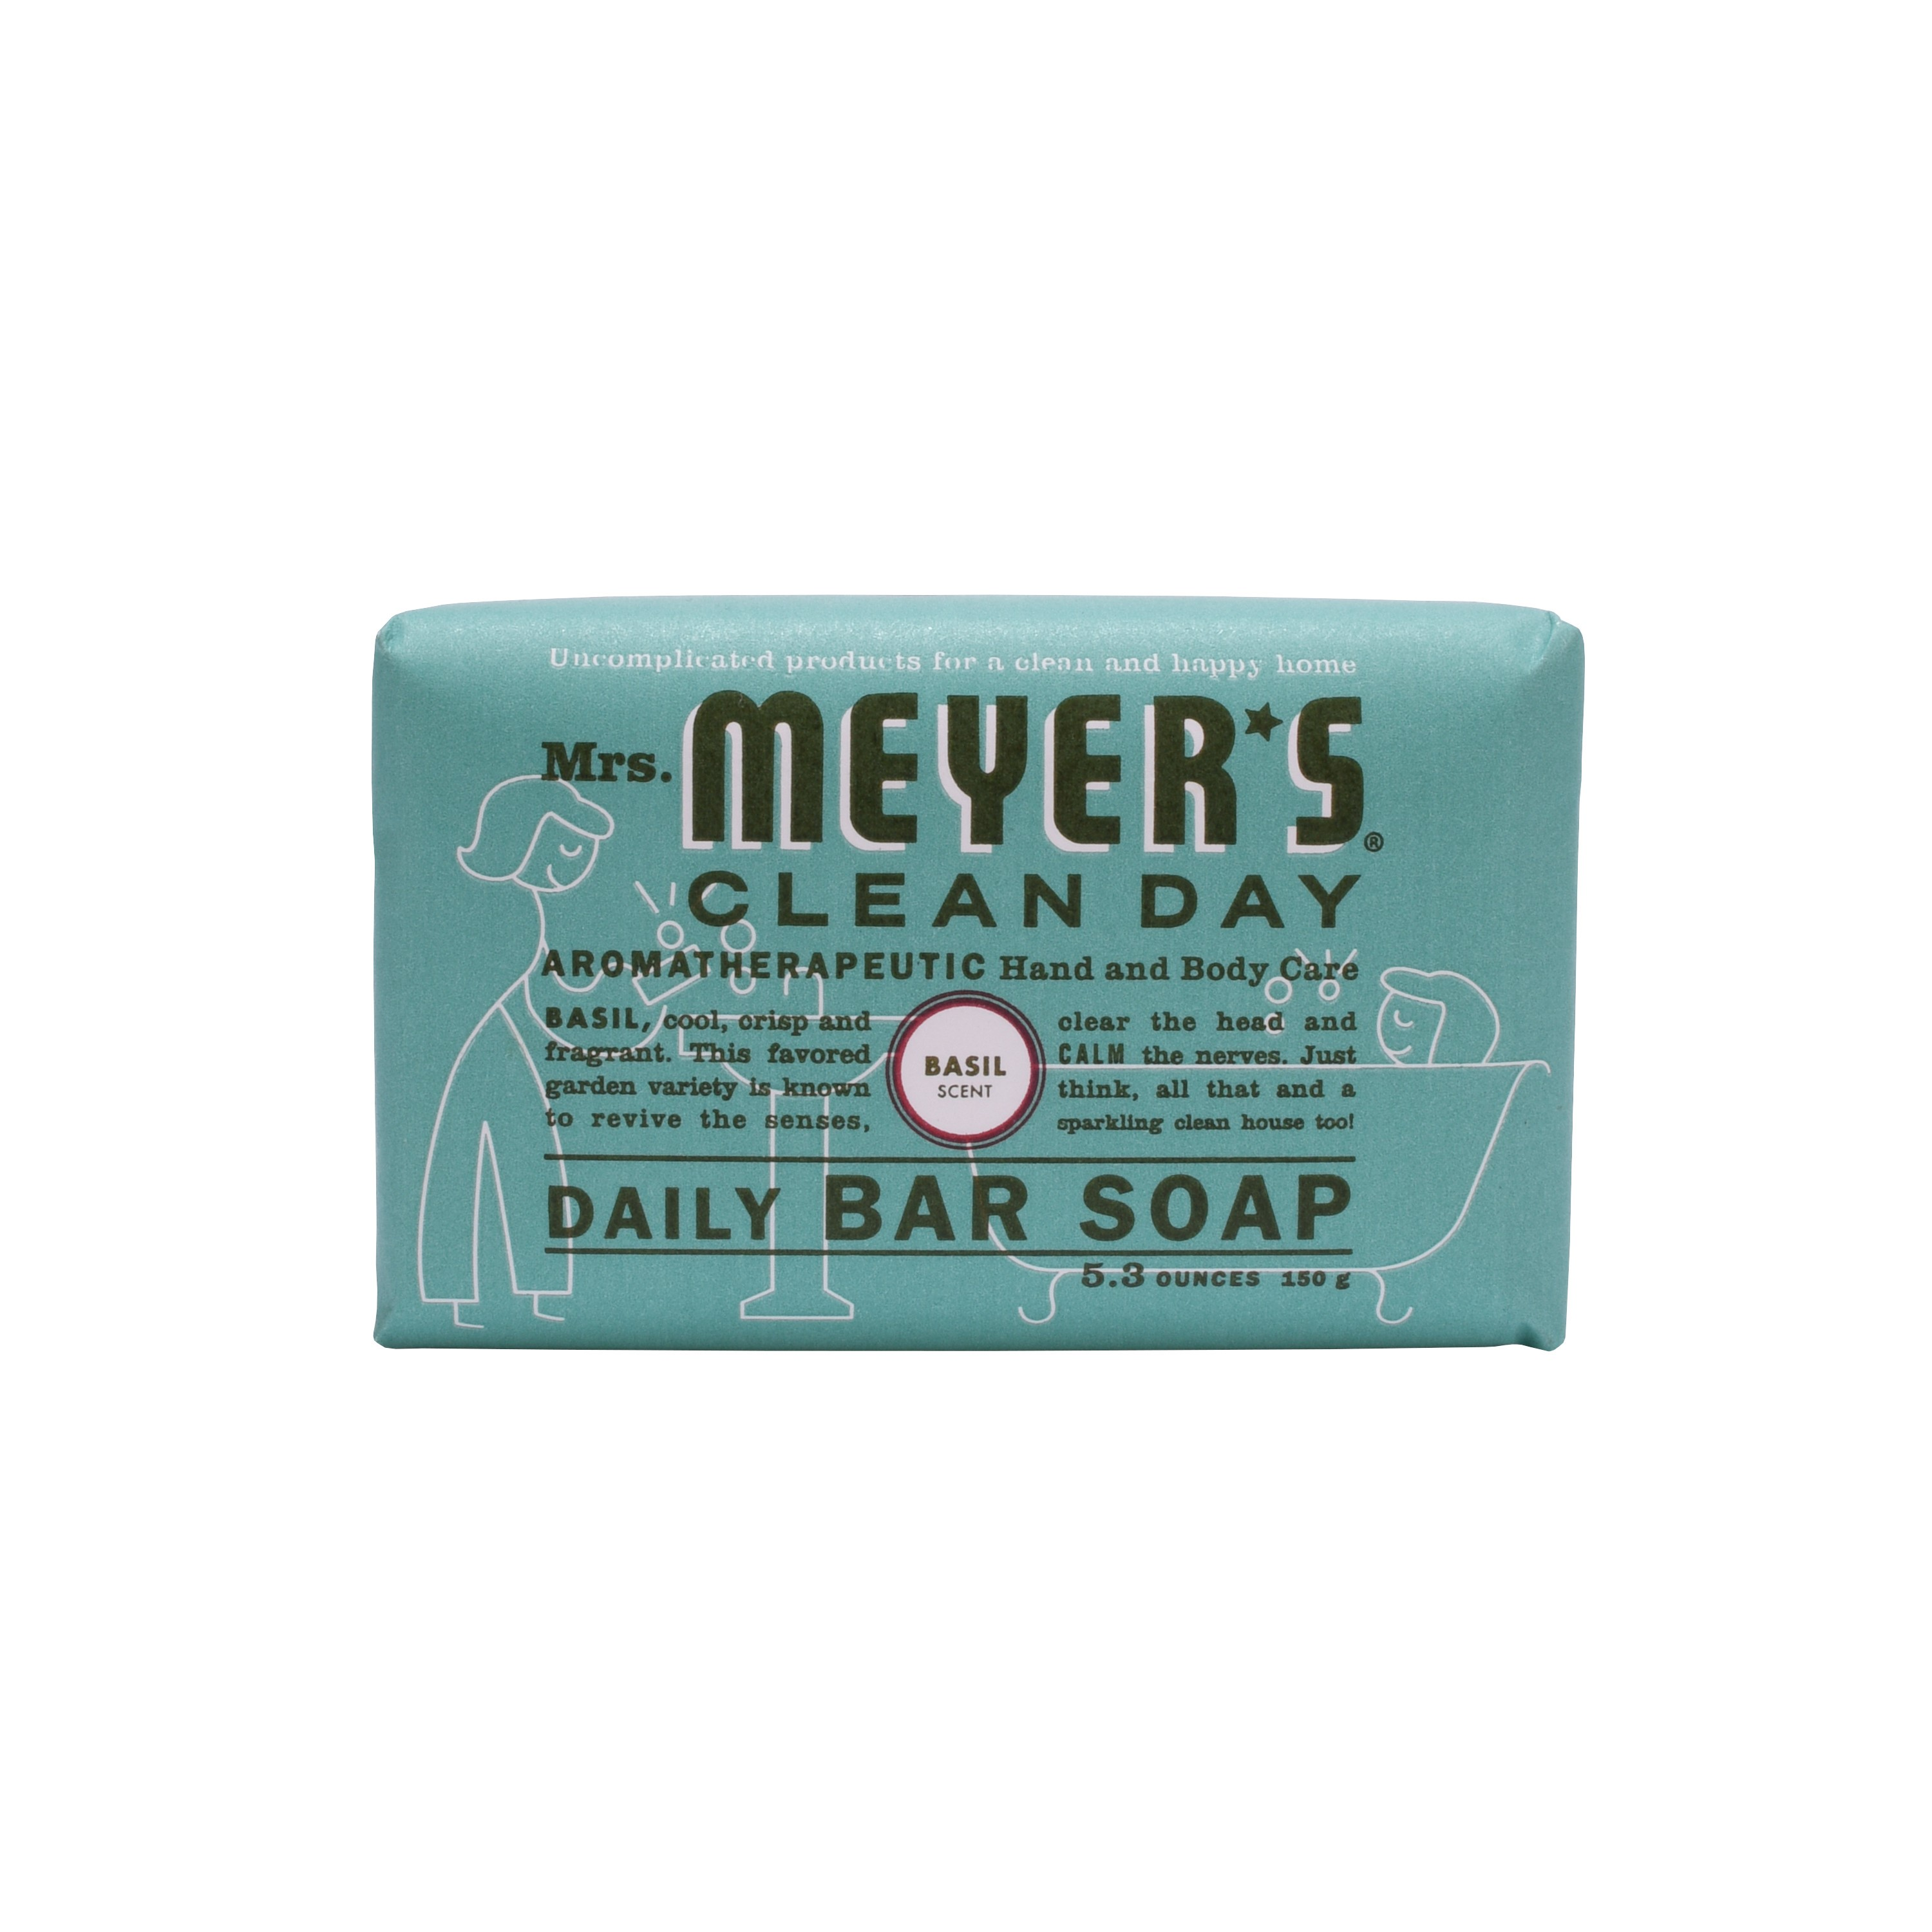 (3 pack) Mrs. Meyer's Clean Day Daily Bar Soap, Basil, 5.3 Ounces